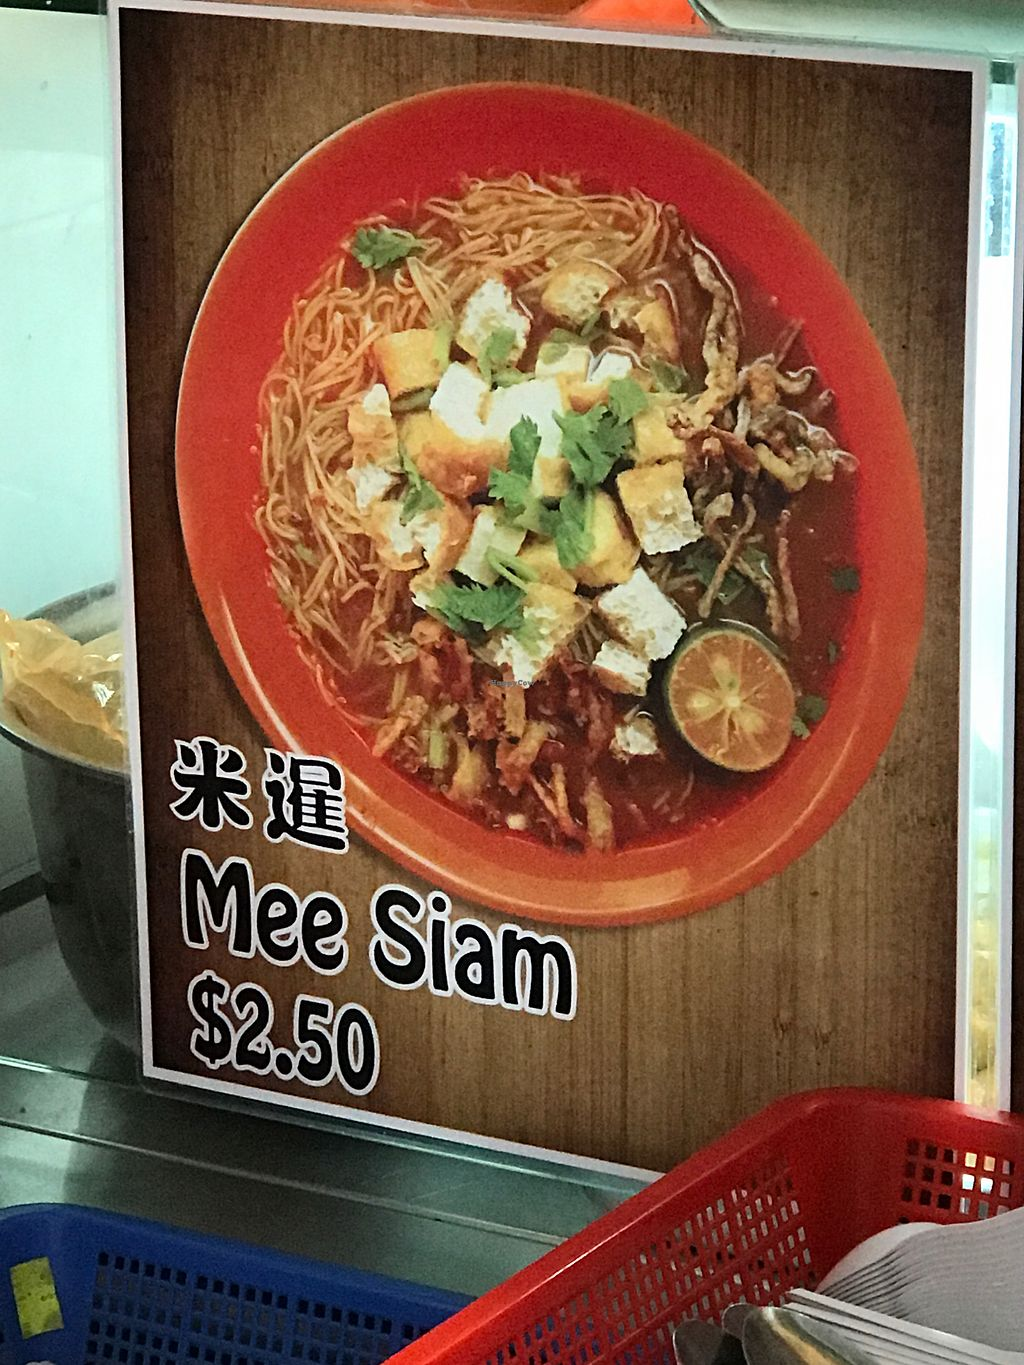 """Photo of Simply Vegetarian - Food Stall  by <a href=""""/members/profile/neilmadhvani"""">neilmadhvani</a> <br/>Mee Siam, delicious! <br/> July 16, 2017  - <a href='/contact/abuse/image/91939/280812'>Report</a>"""